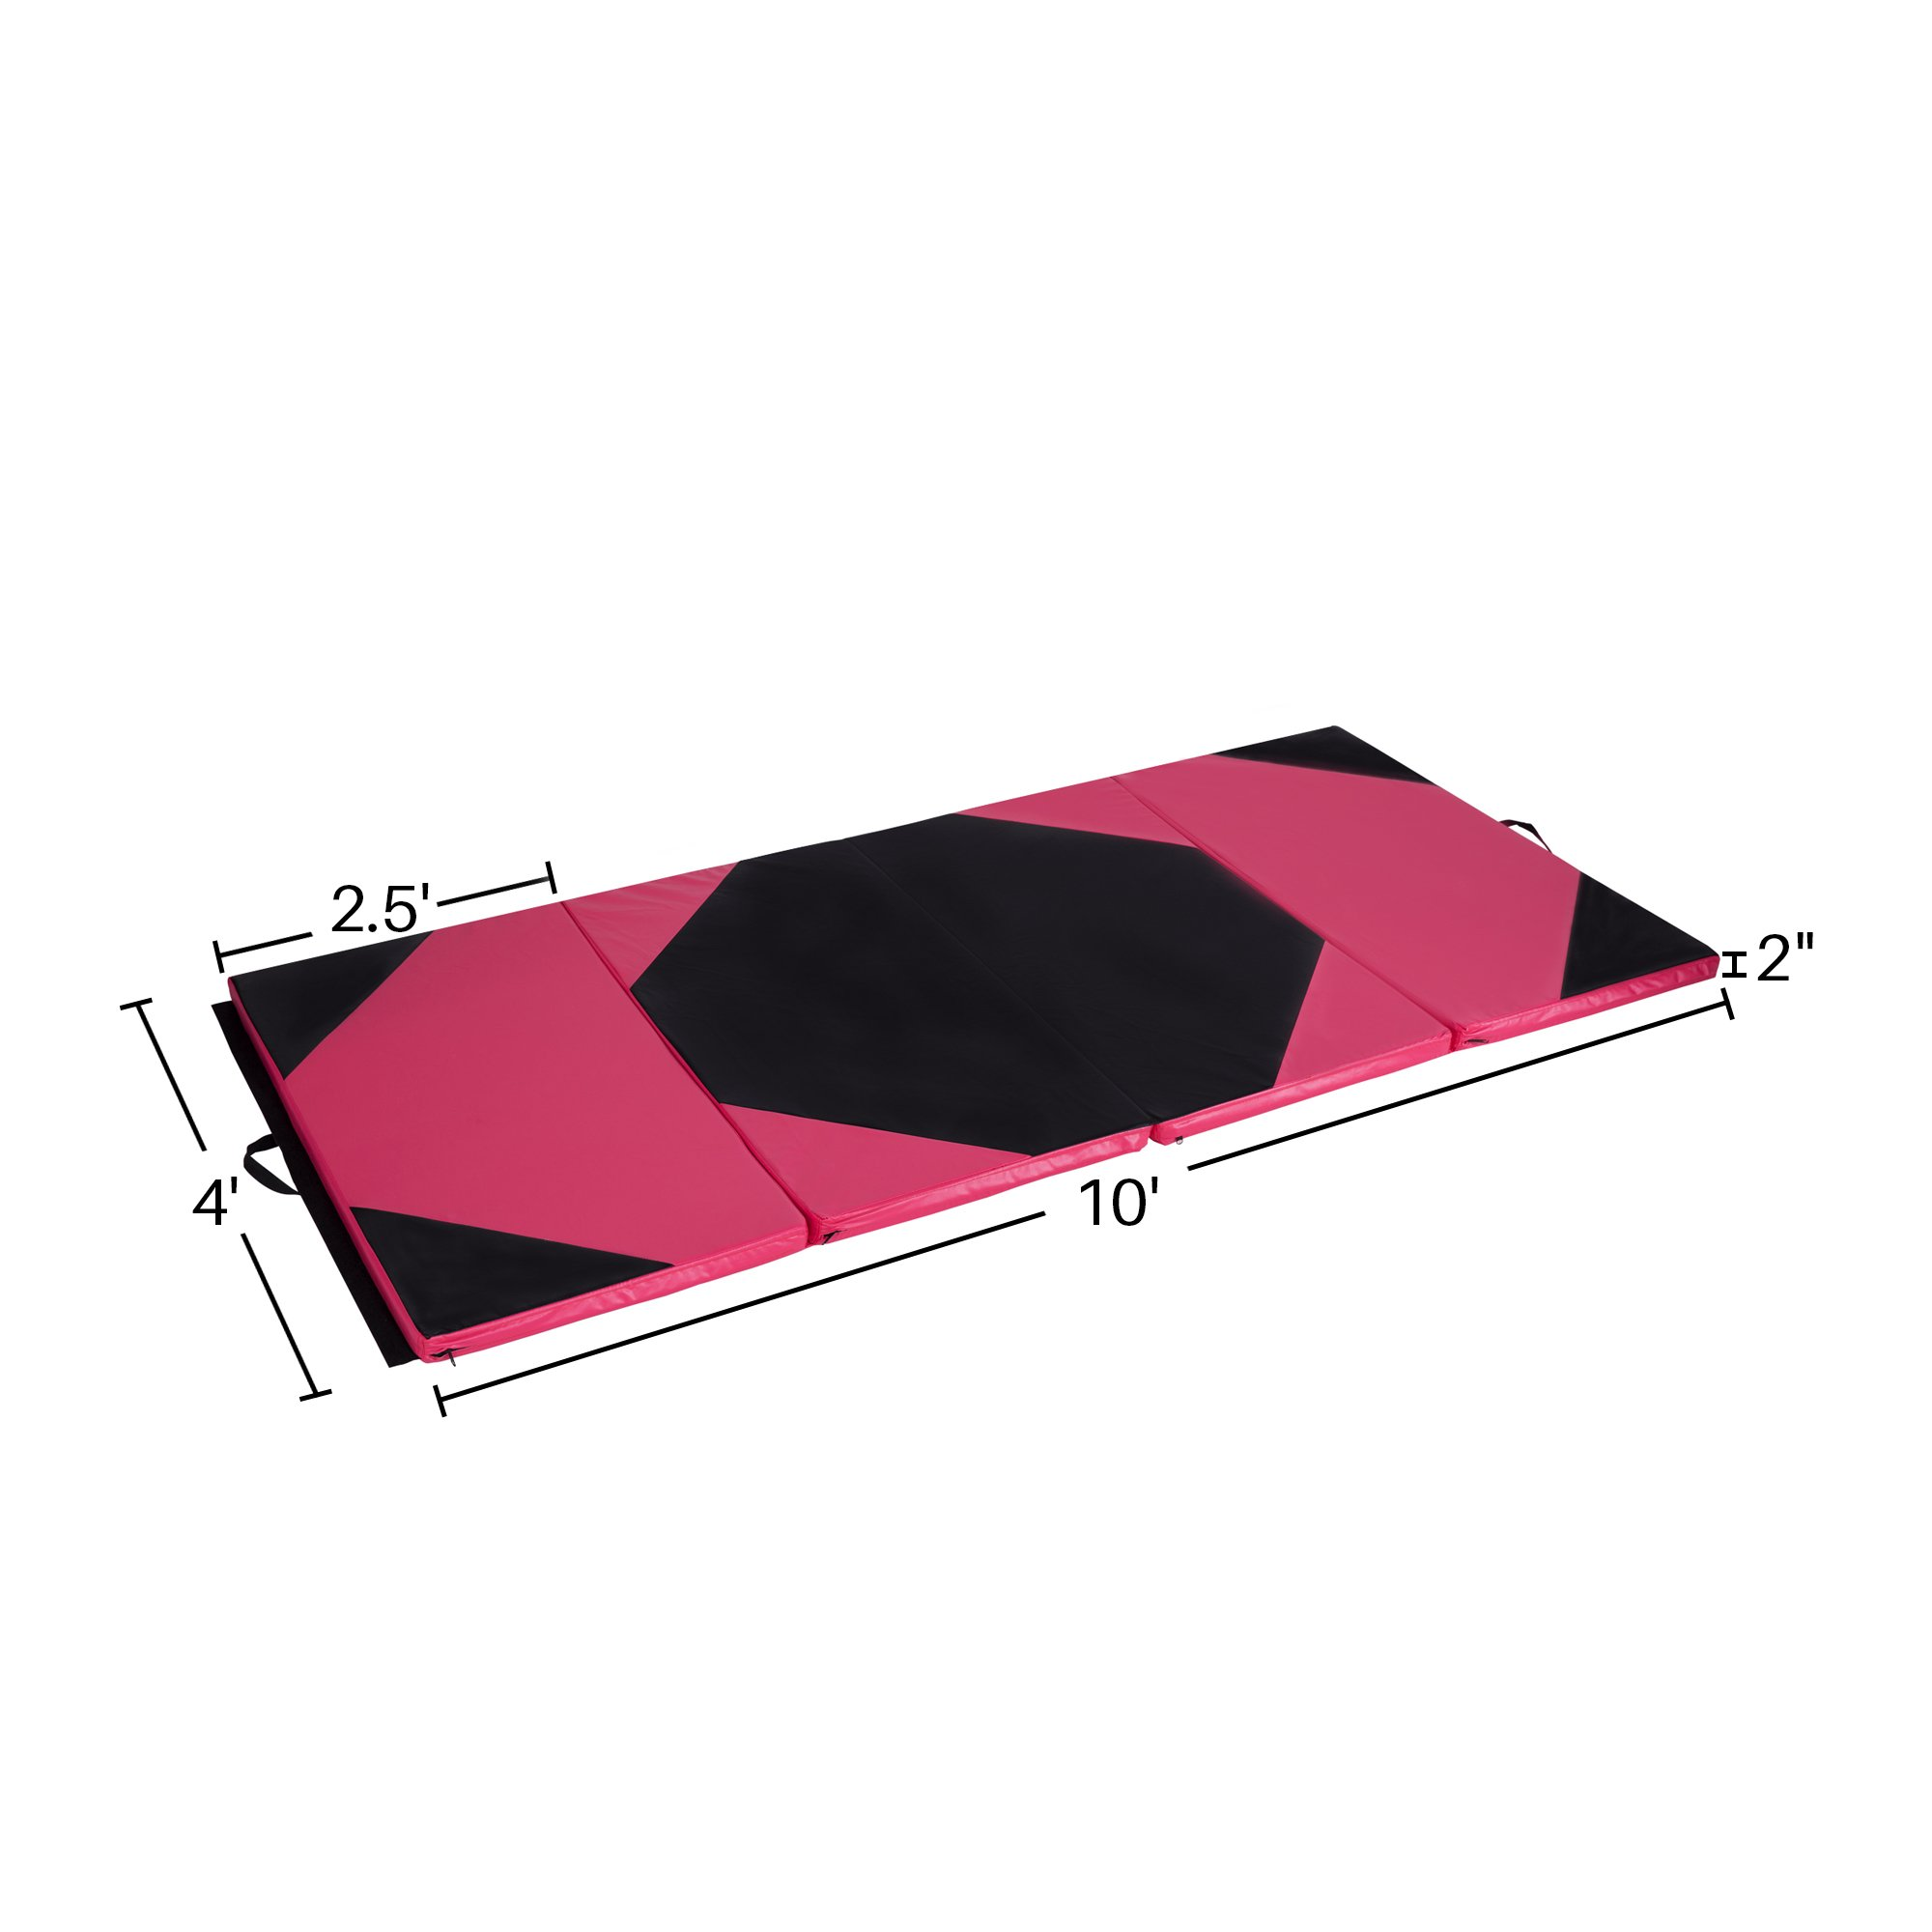 Sportmad 4'x10'x2 Thick Folding Panel Gymnastics Tumbling Mat Gym, Fitness, Exercise (Black/Pink) by Sportmad (Image #9)